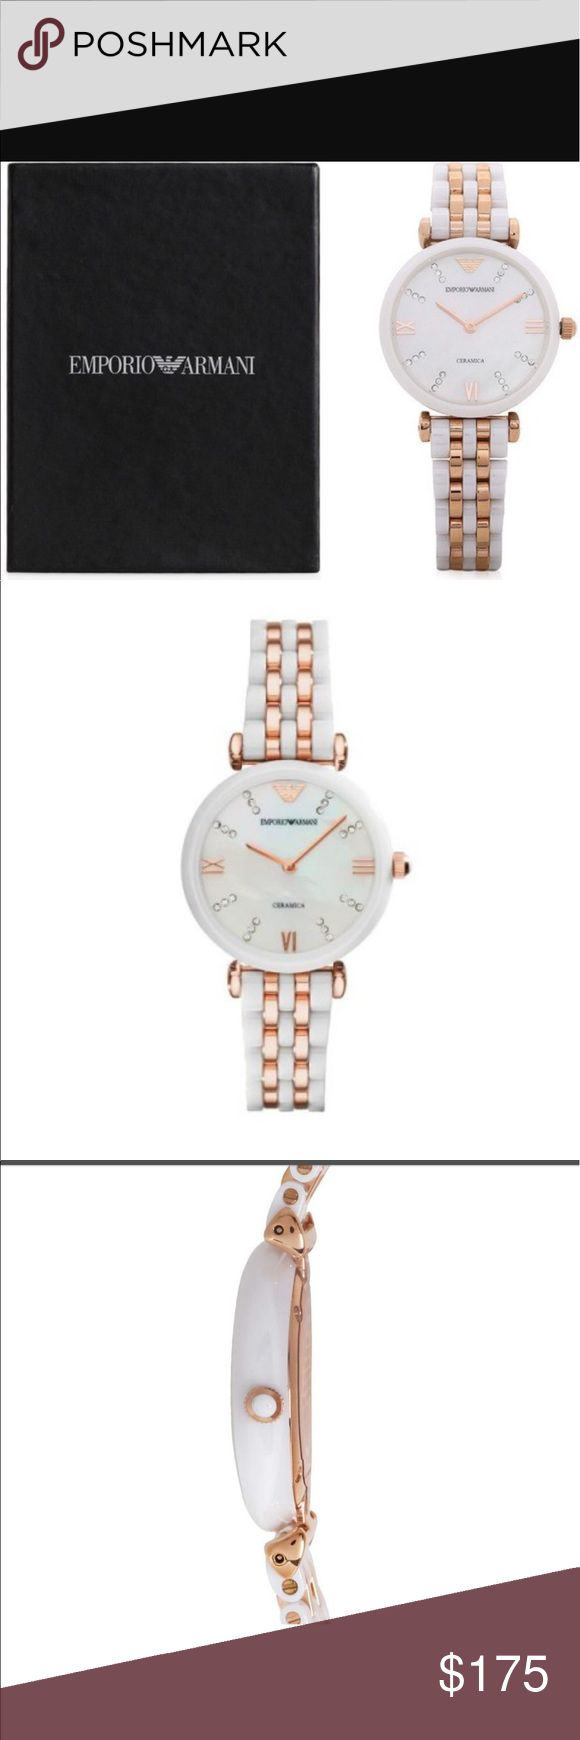 Emporio Armani Ceramic Watch ⌚️ Round; Approx. 32 mm Diameter x 7 mm Thickness White ceramic Rose Gold Tone Hands & Hour Posts, and also Clear Crystal Hour Posts Rose Gold Tone Emporio Armani Logo 12 O'Clock Hour Post High Quality Japanese Quartz Movement White Mother-of-Pearl Dial Face Scratch-Resistant Mineral Glass Crystal  Rose Gold Tone Crown   Polished Stainless Steel Back  Gleaming White Ceramic and Rose Gold Tone Bracelet  Secure Hidden Push Button Clasp Closure  Water Resistant (3…